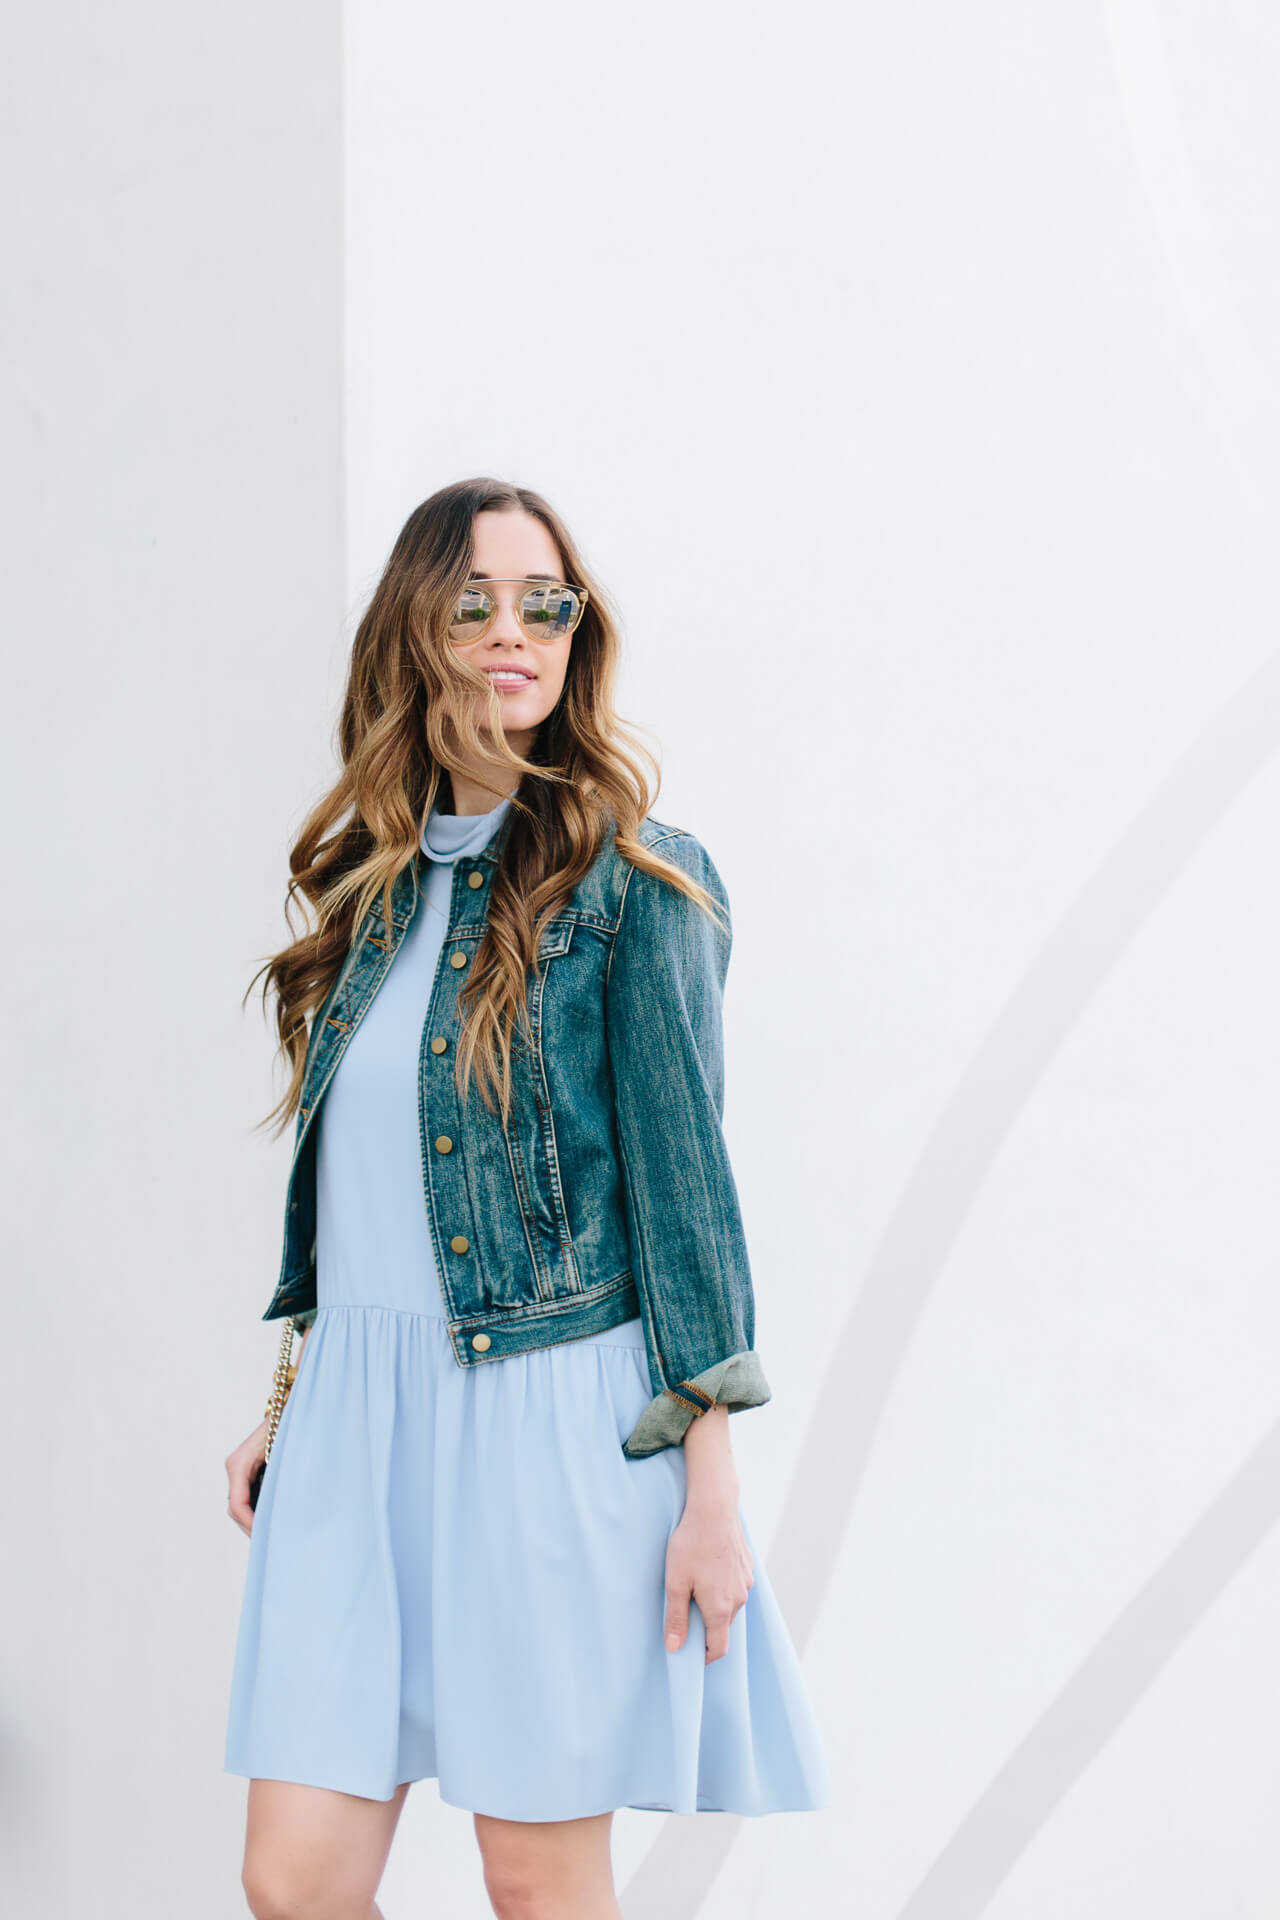 styling denim jackets in the spring